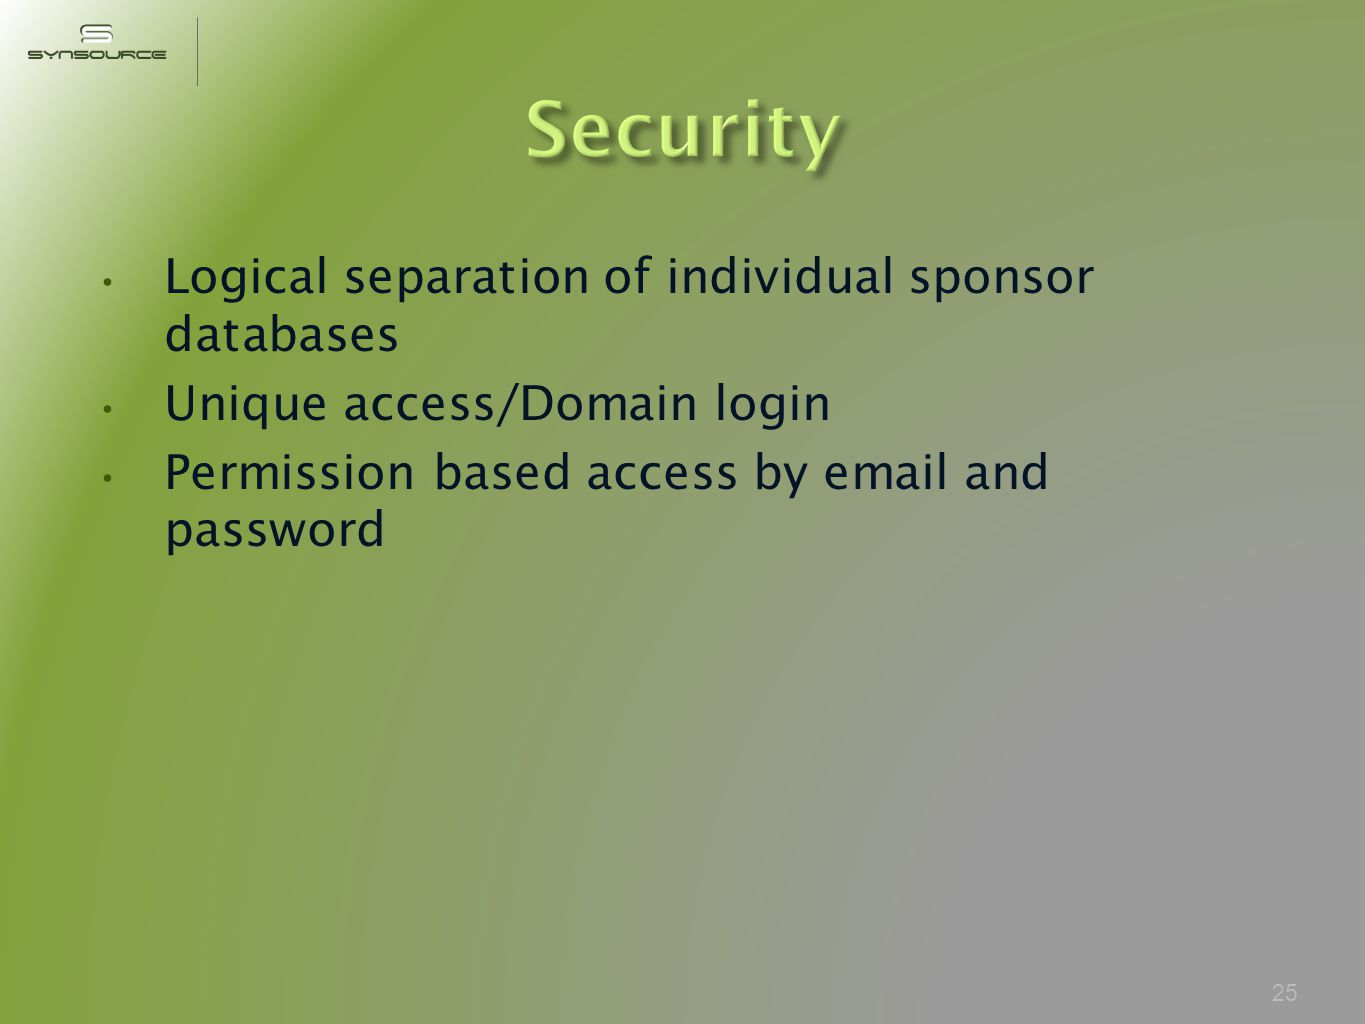 Logical separation of individual sponsor databases Unique access/Domain login Permission based access by  and password 25